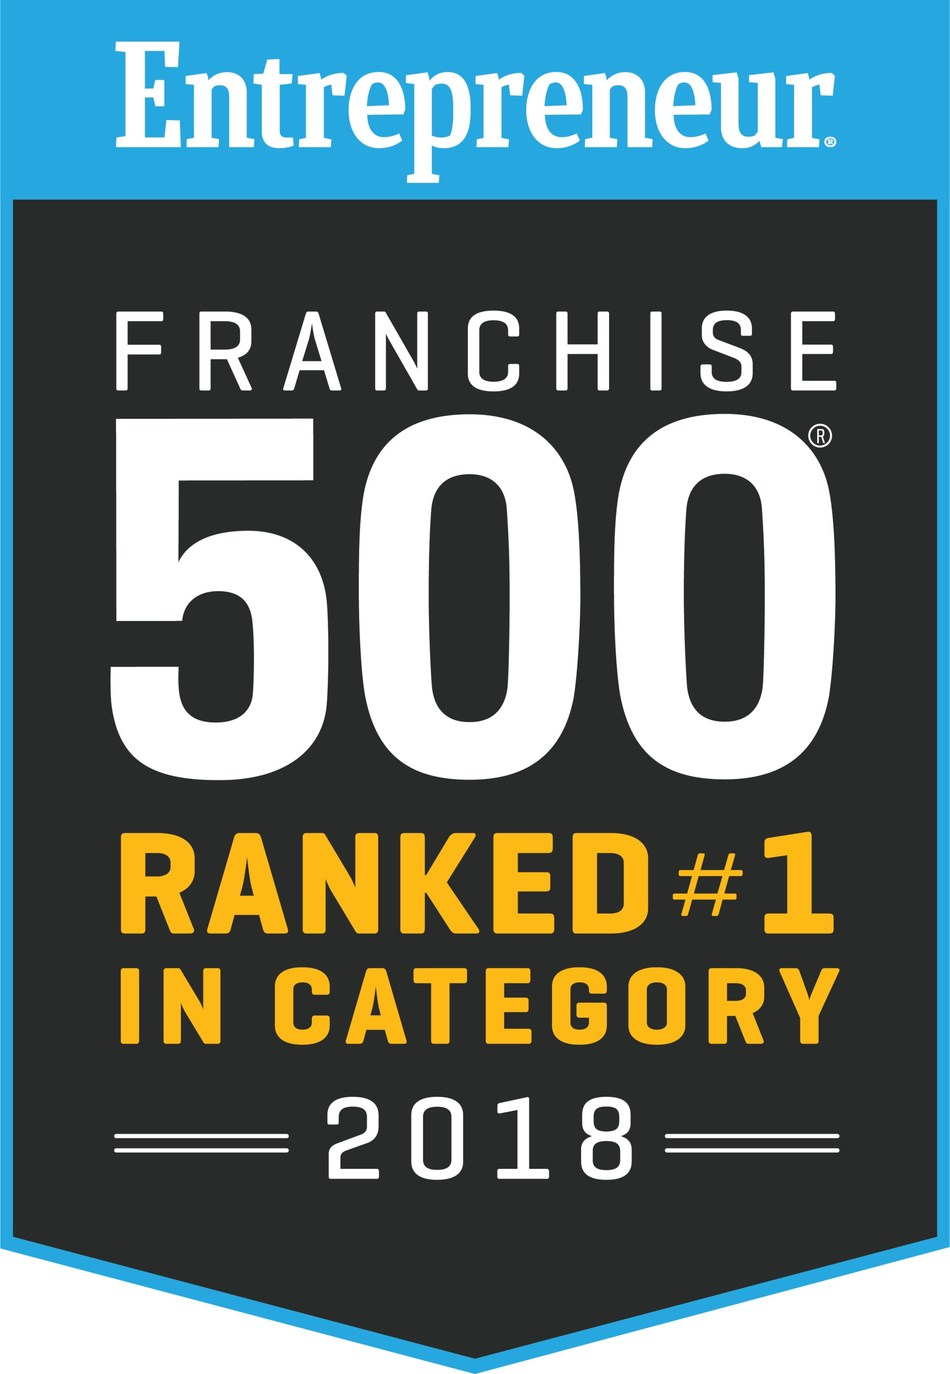 LINE-X RANKED #1 IN CATEGORY FOR NINTH TIME ON ENTREPRENEUR MAGAZINE'S FRANCHISE 500 LIST - For the ninth time since 2005, LINE-X has been ranked the #1 company in the Miscellaneous Auto Products and Services category of Entrepreneur Magazine's annual Franchise 500 rankings. LINE-X also jumped up 69 positions on the overall Franchise 500 list and this year was ranked #149 among all franchise corporations. For more information, visit www.linex.com.